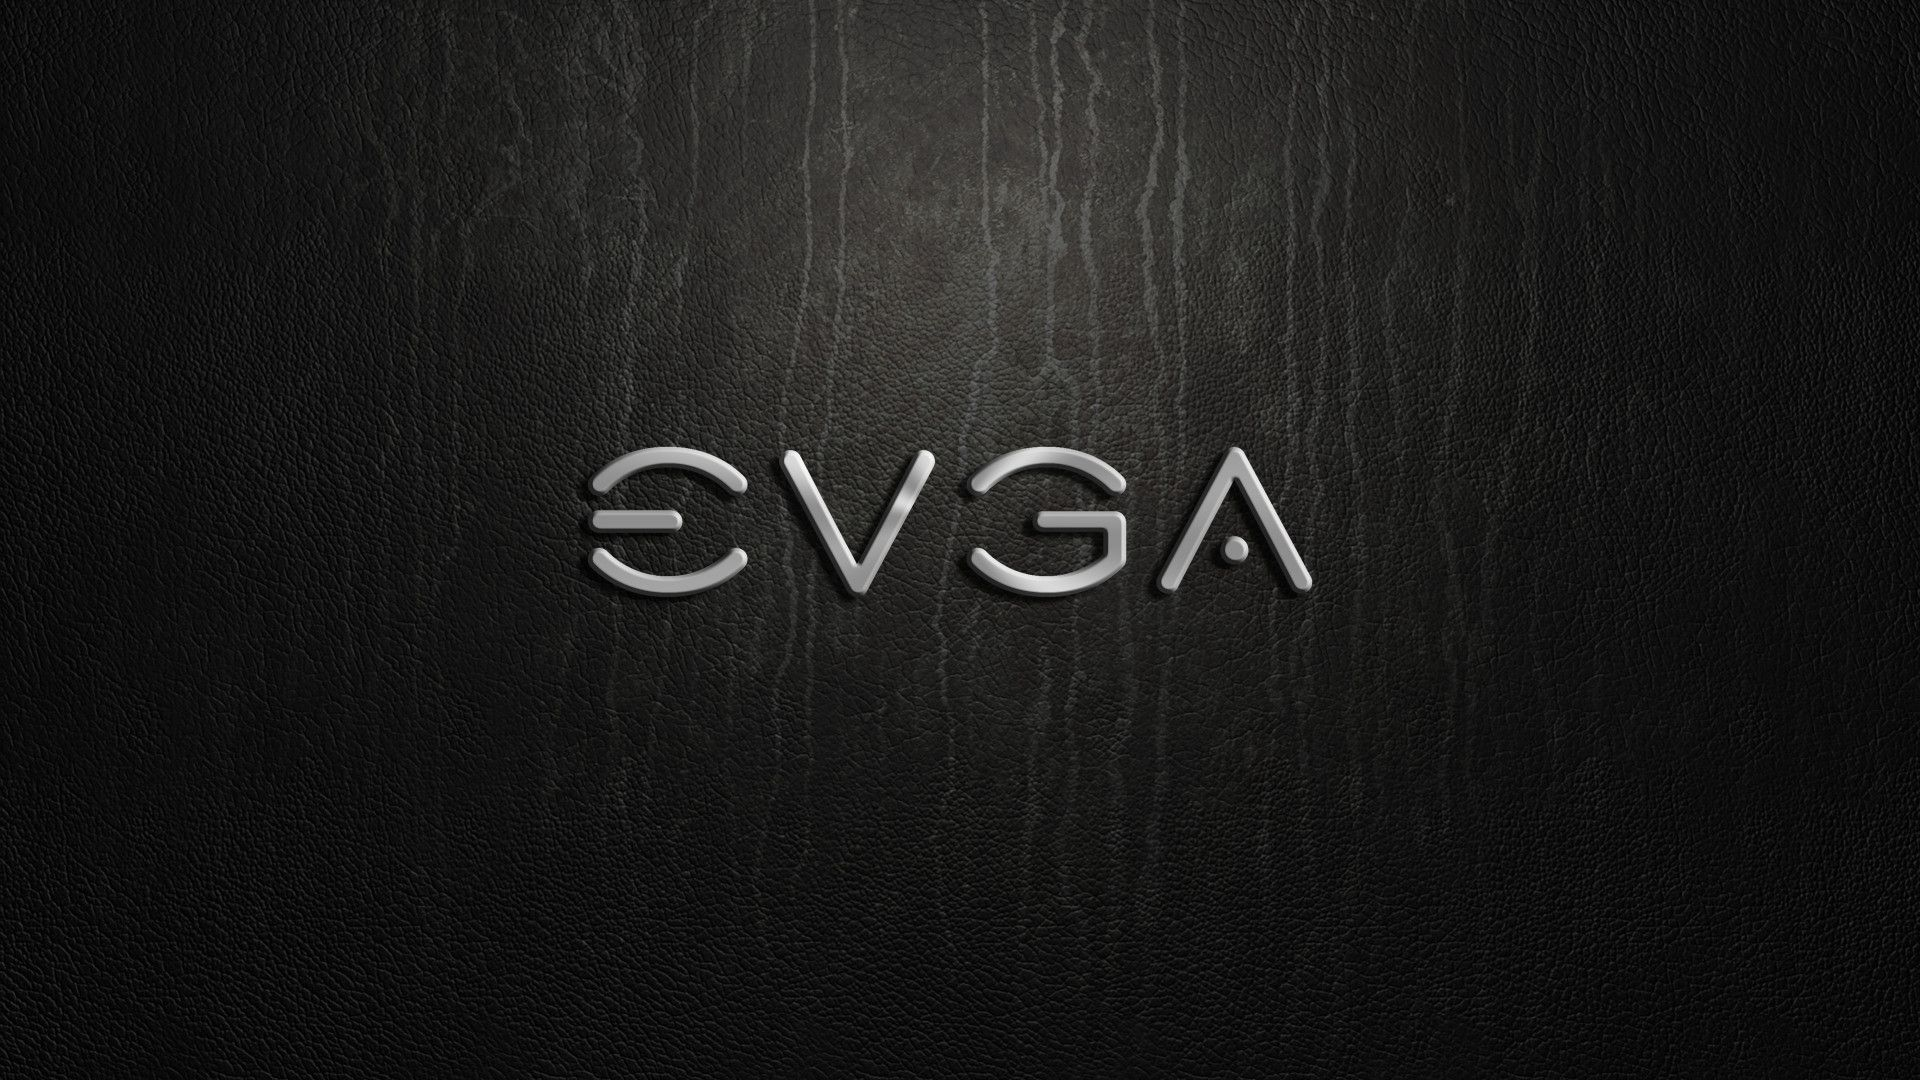 evga 4k wallpapers background backgrounds wallpaperaccess wall 1920 alphacoders